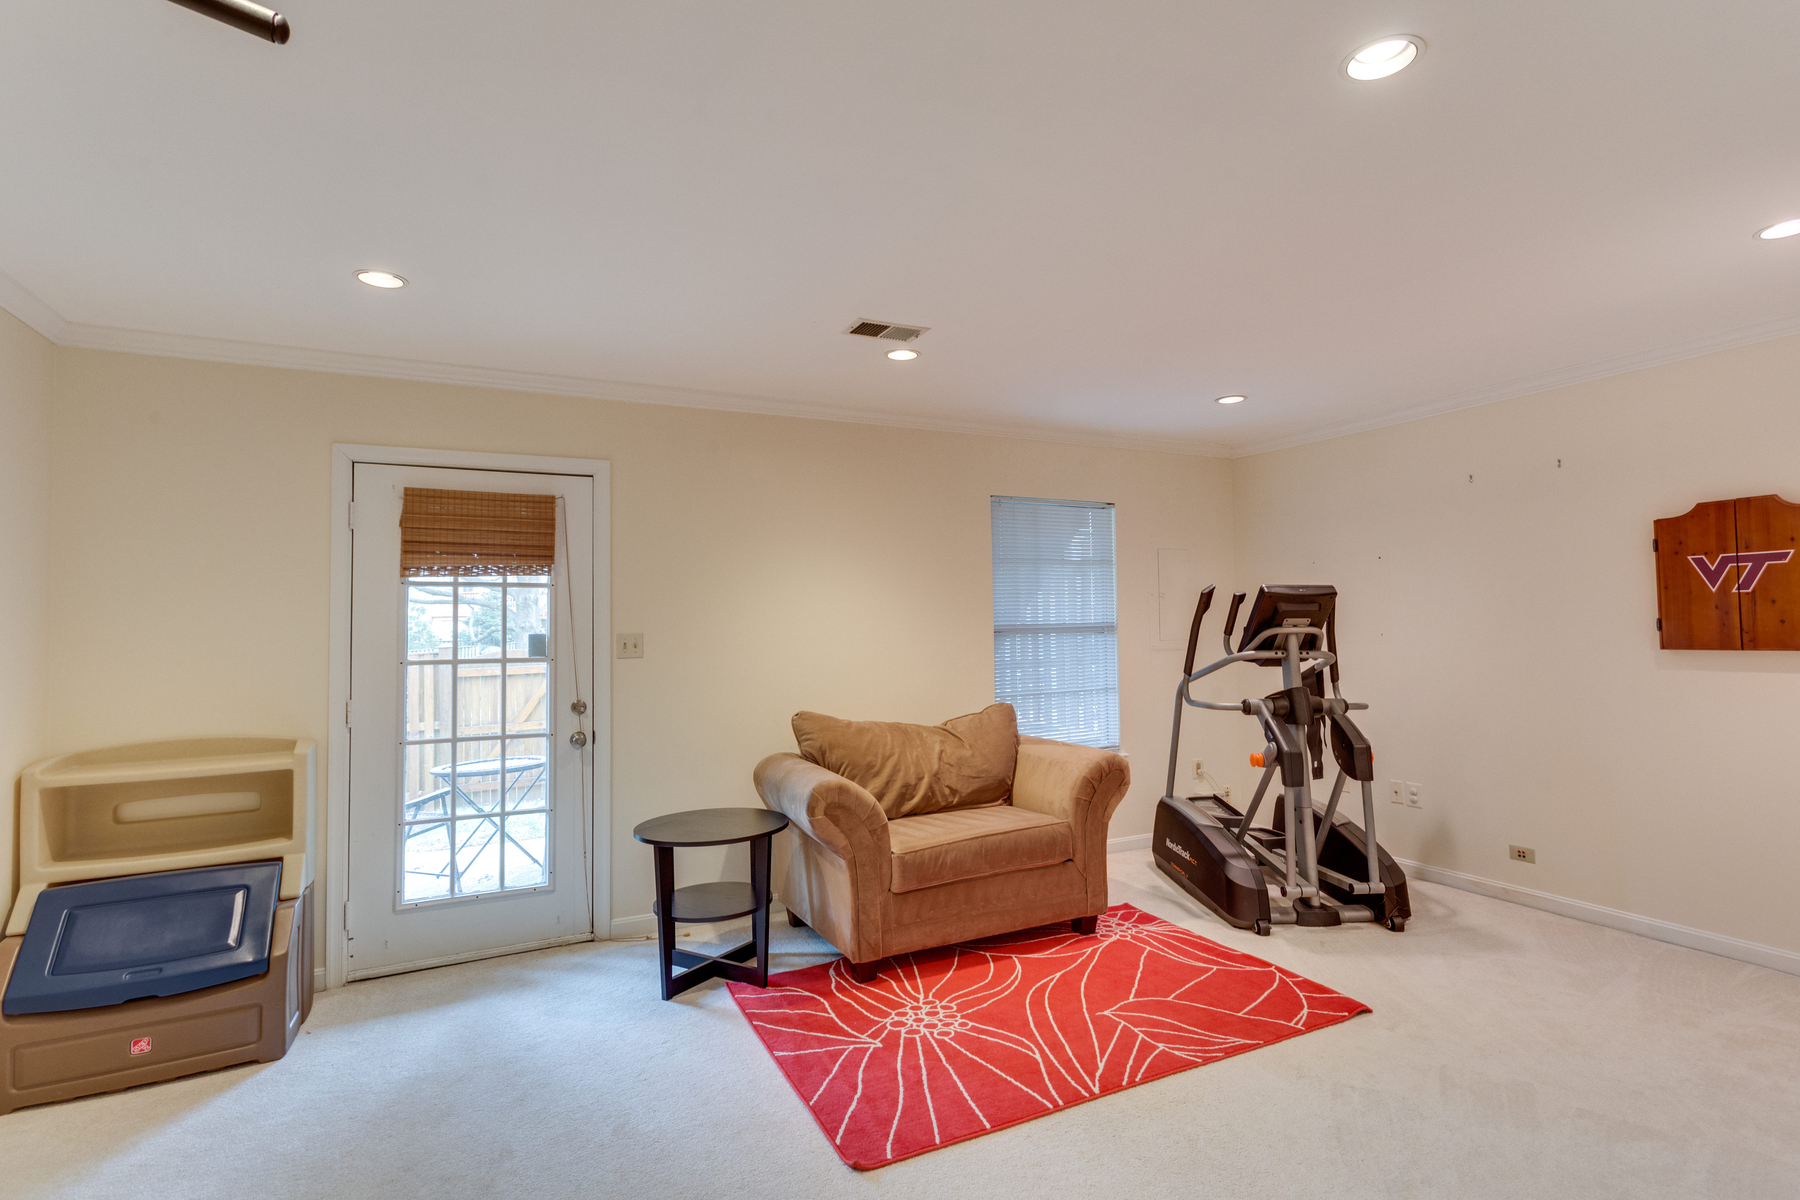 Additional photo for property listing at Runnymeade 6047 Knights Ridge Way Alexandria, Virginia 22310 Estados Unidos